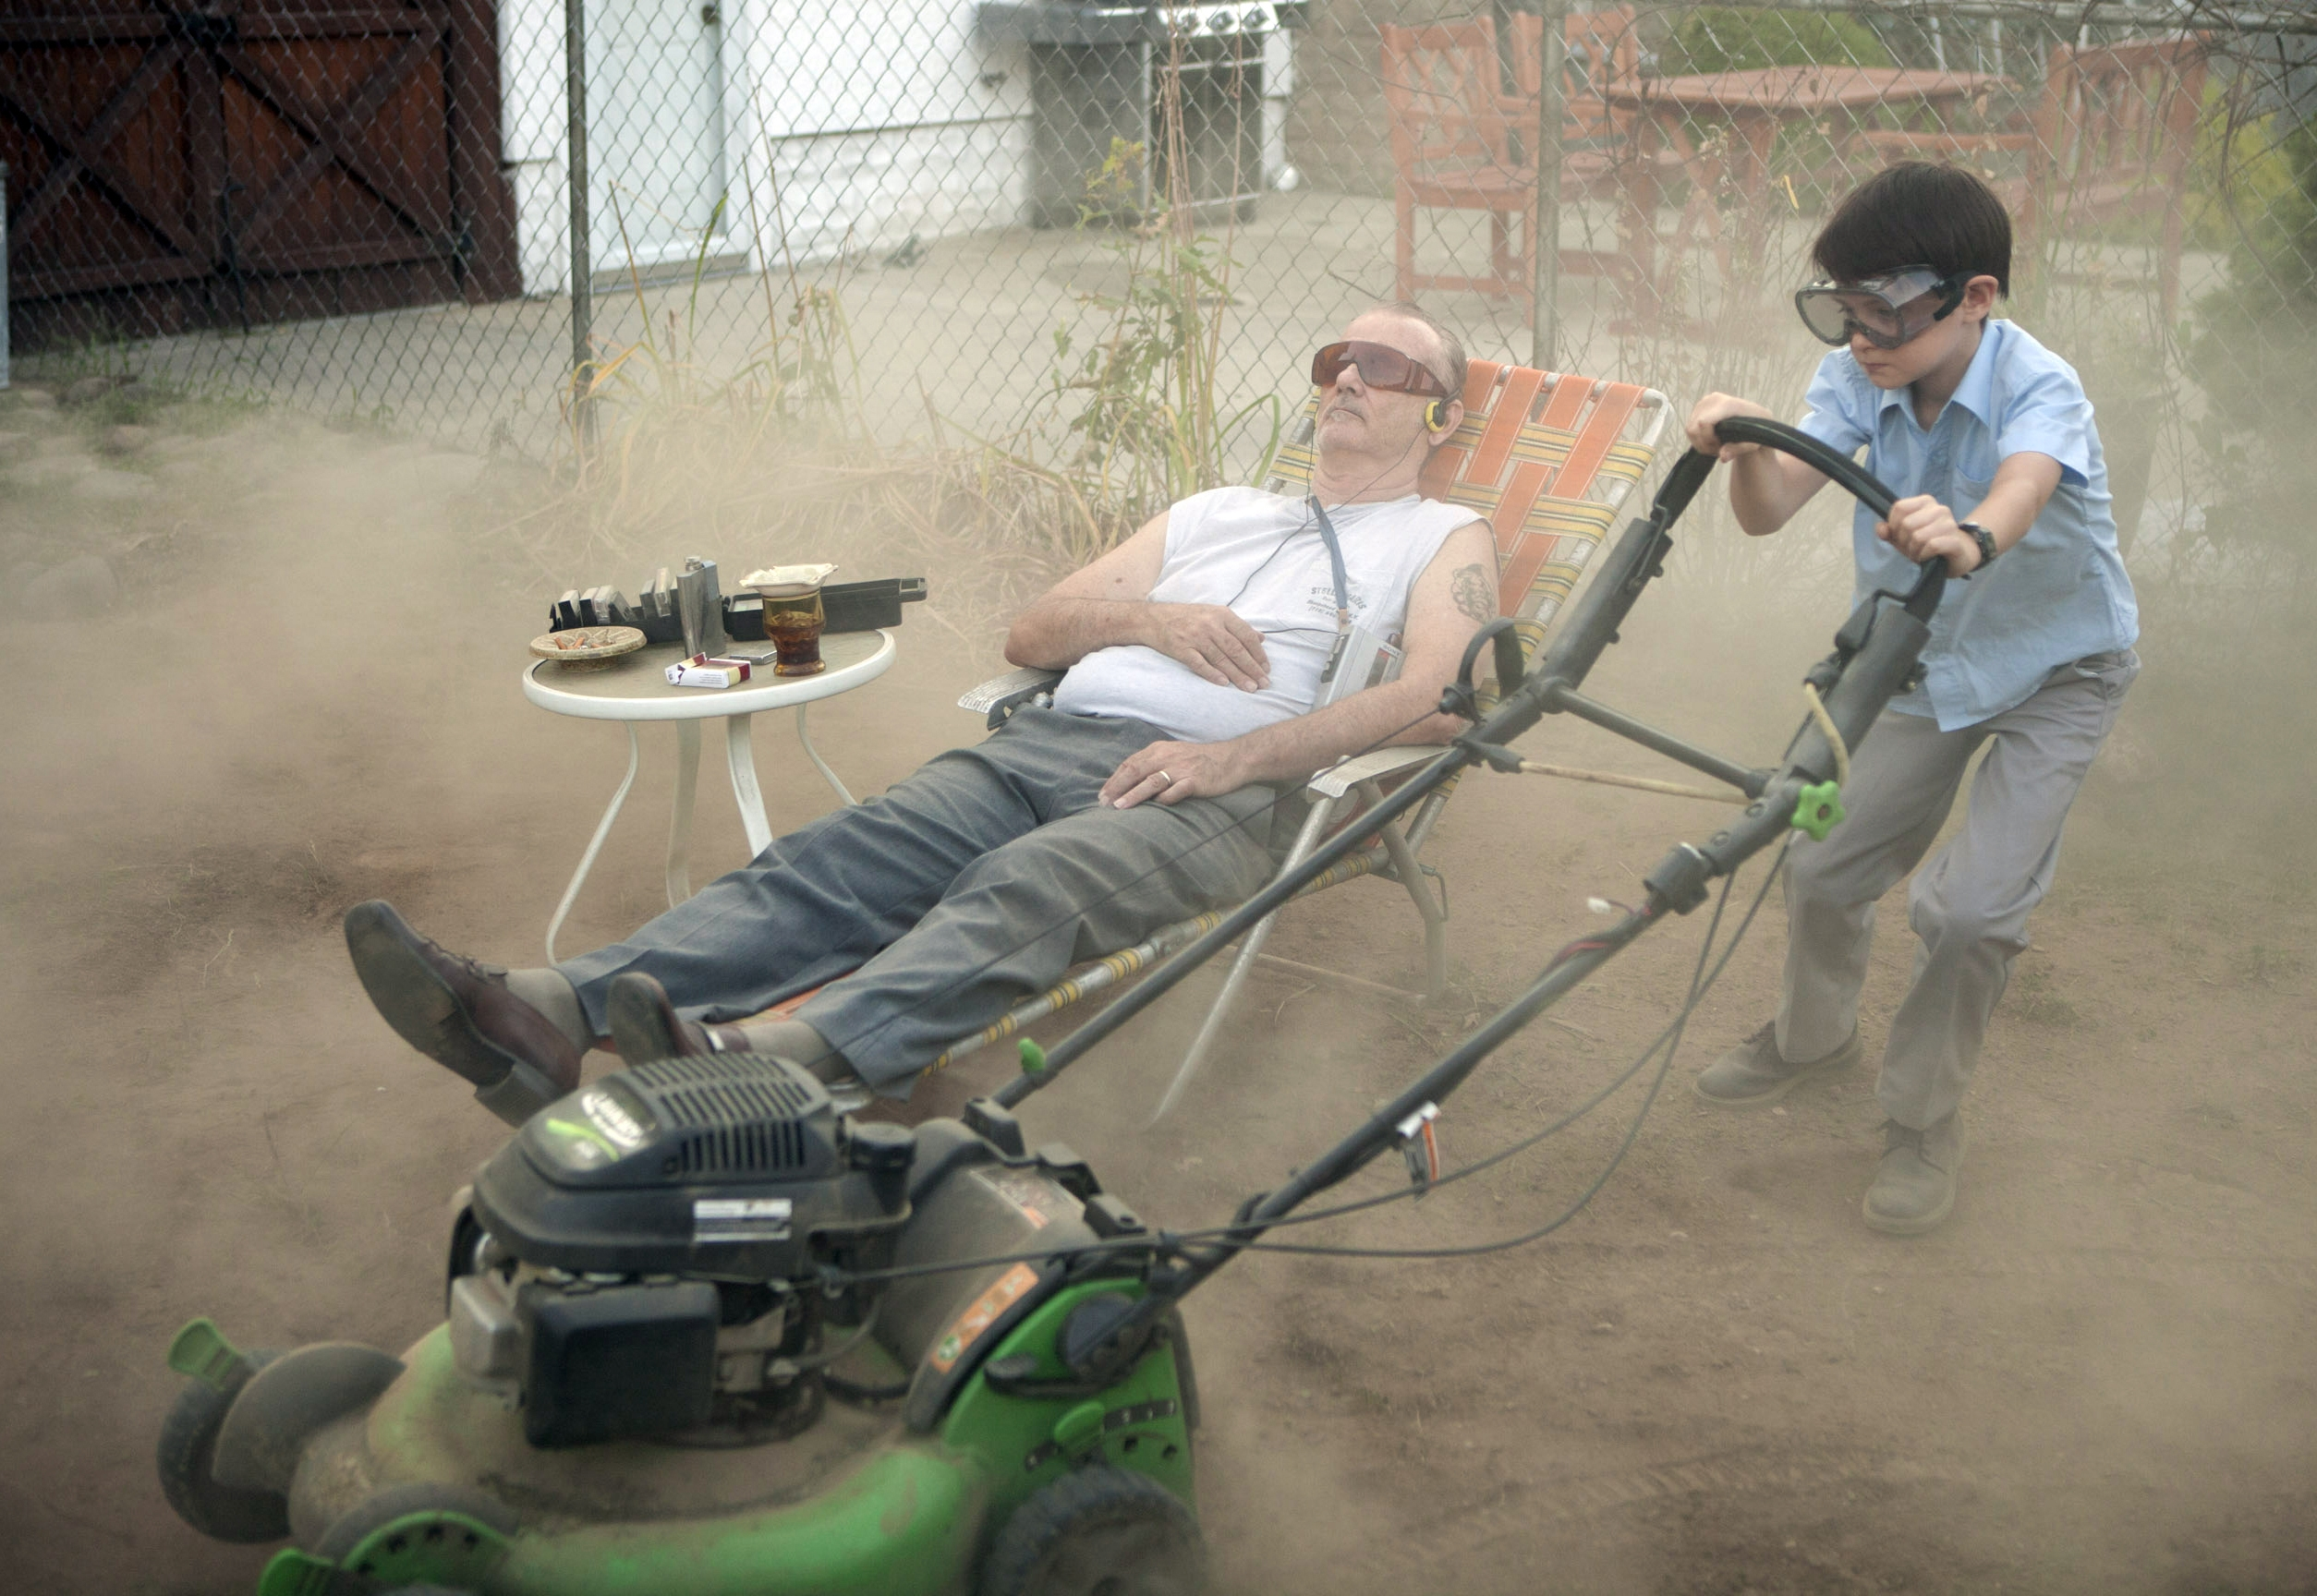 Bill Murray relaxes while Jaeden Lieberher mows his lawn in St. Vincent.